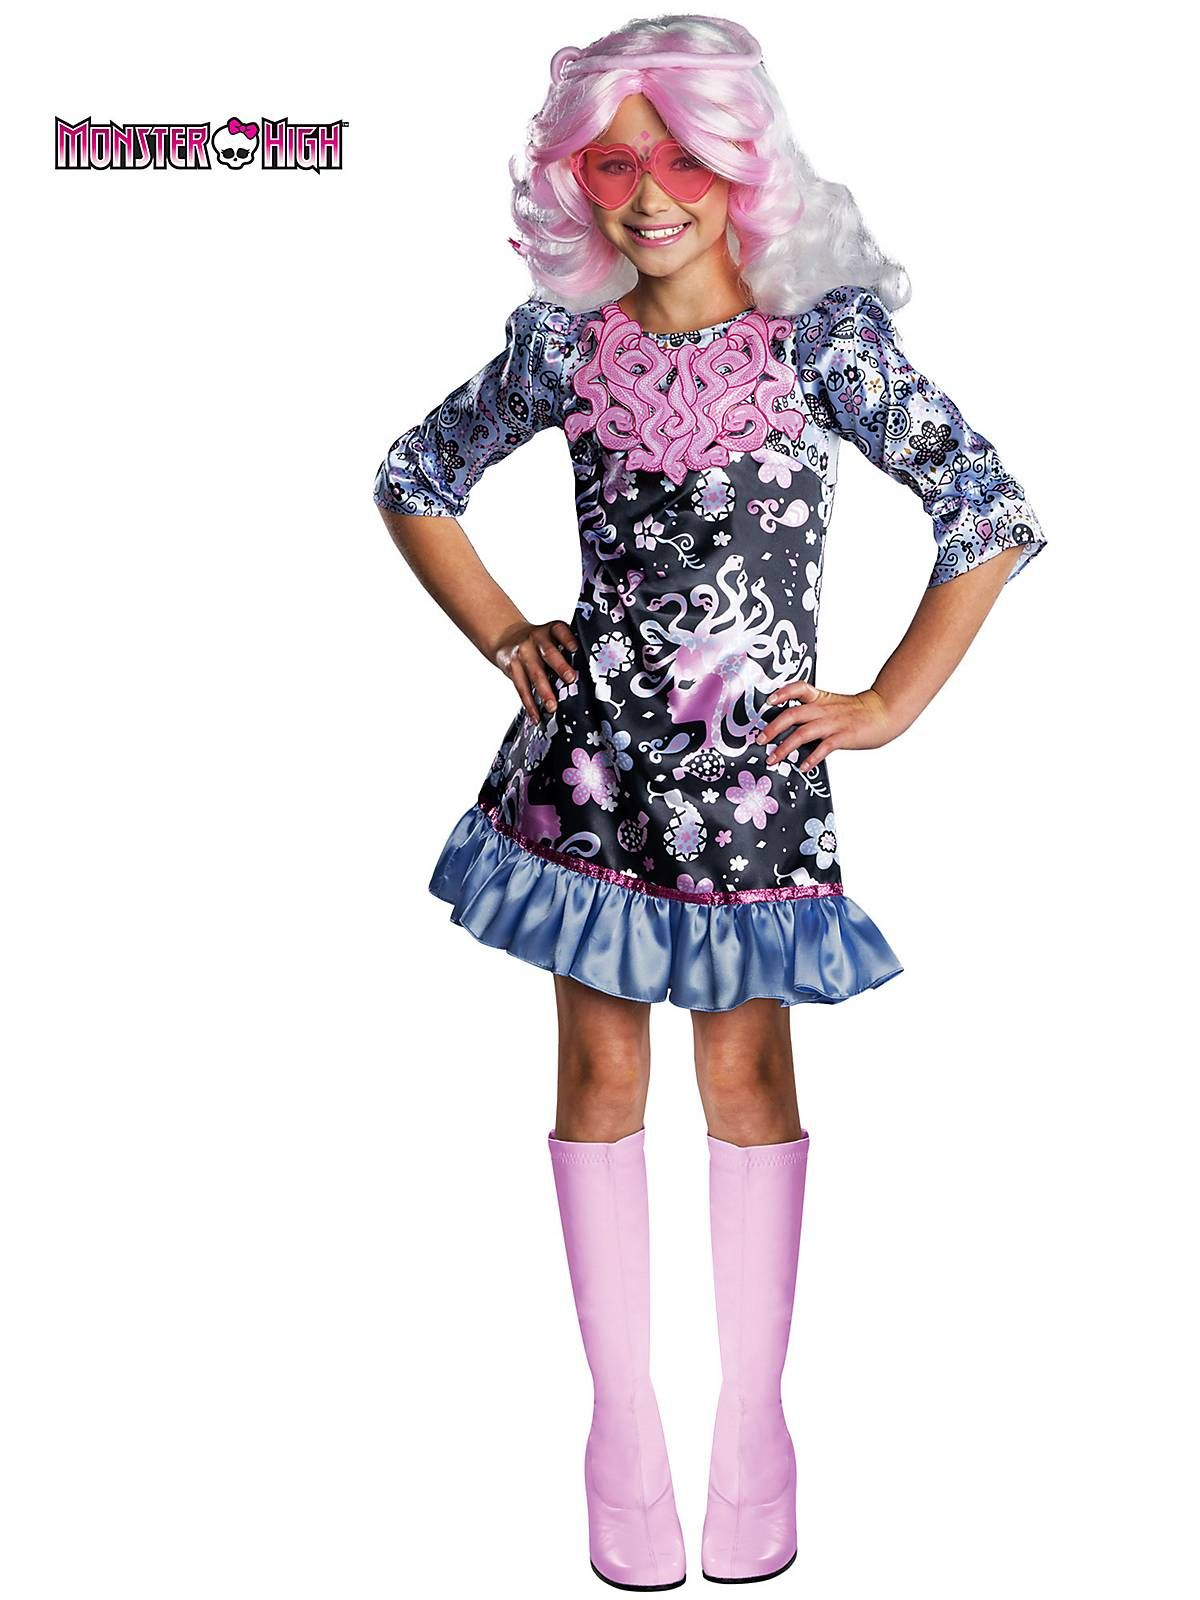 monster high viperine girls costume | 6th birthday party ideas